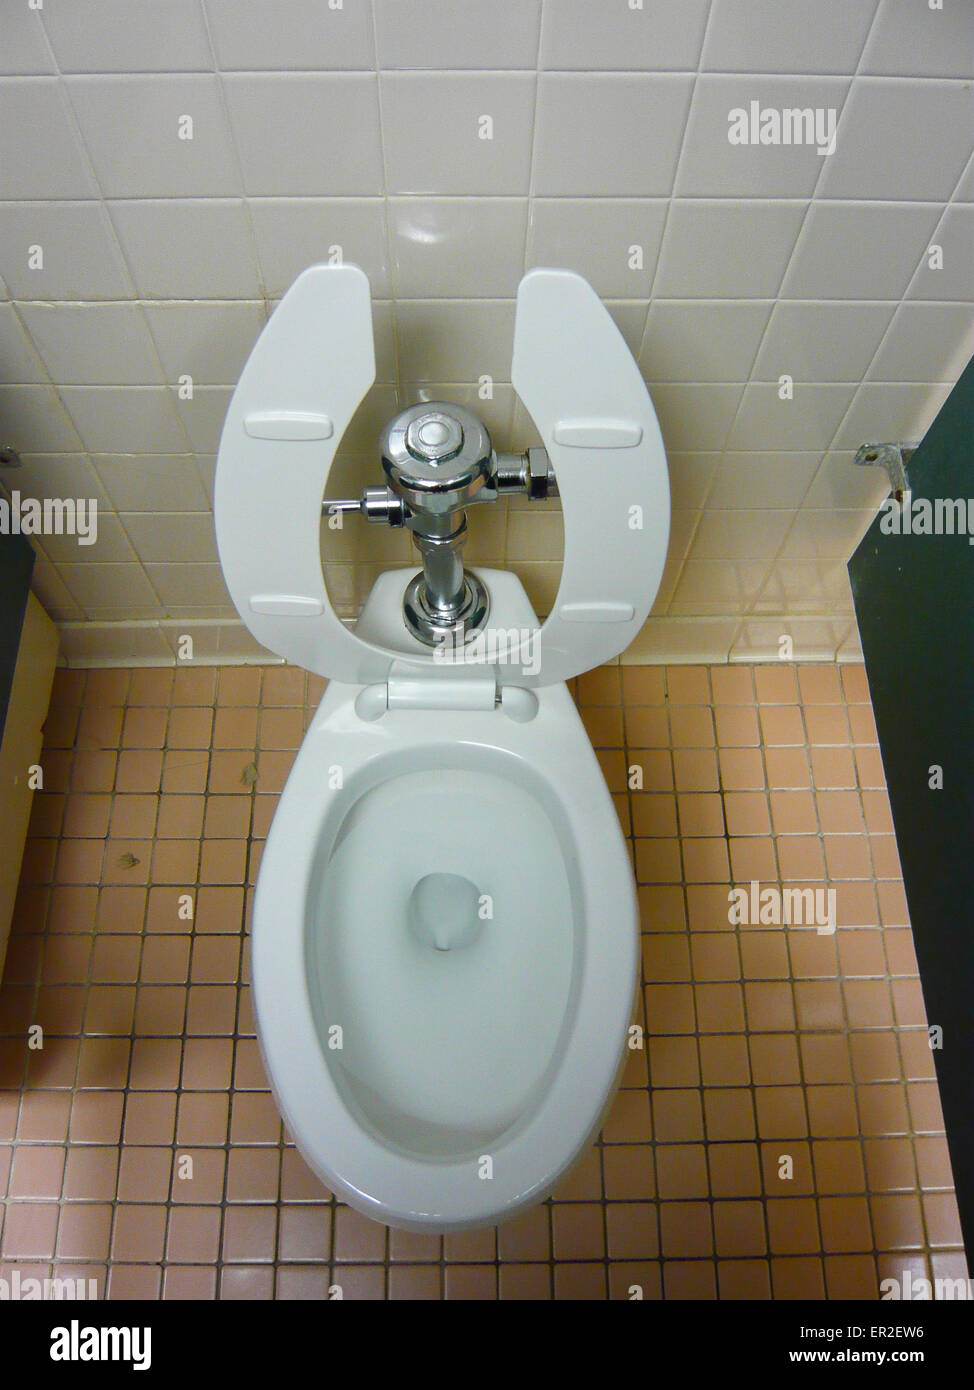 Crapper And Toilet Stock Photos & Crapper And Toilet Stock Images ...